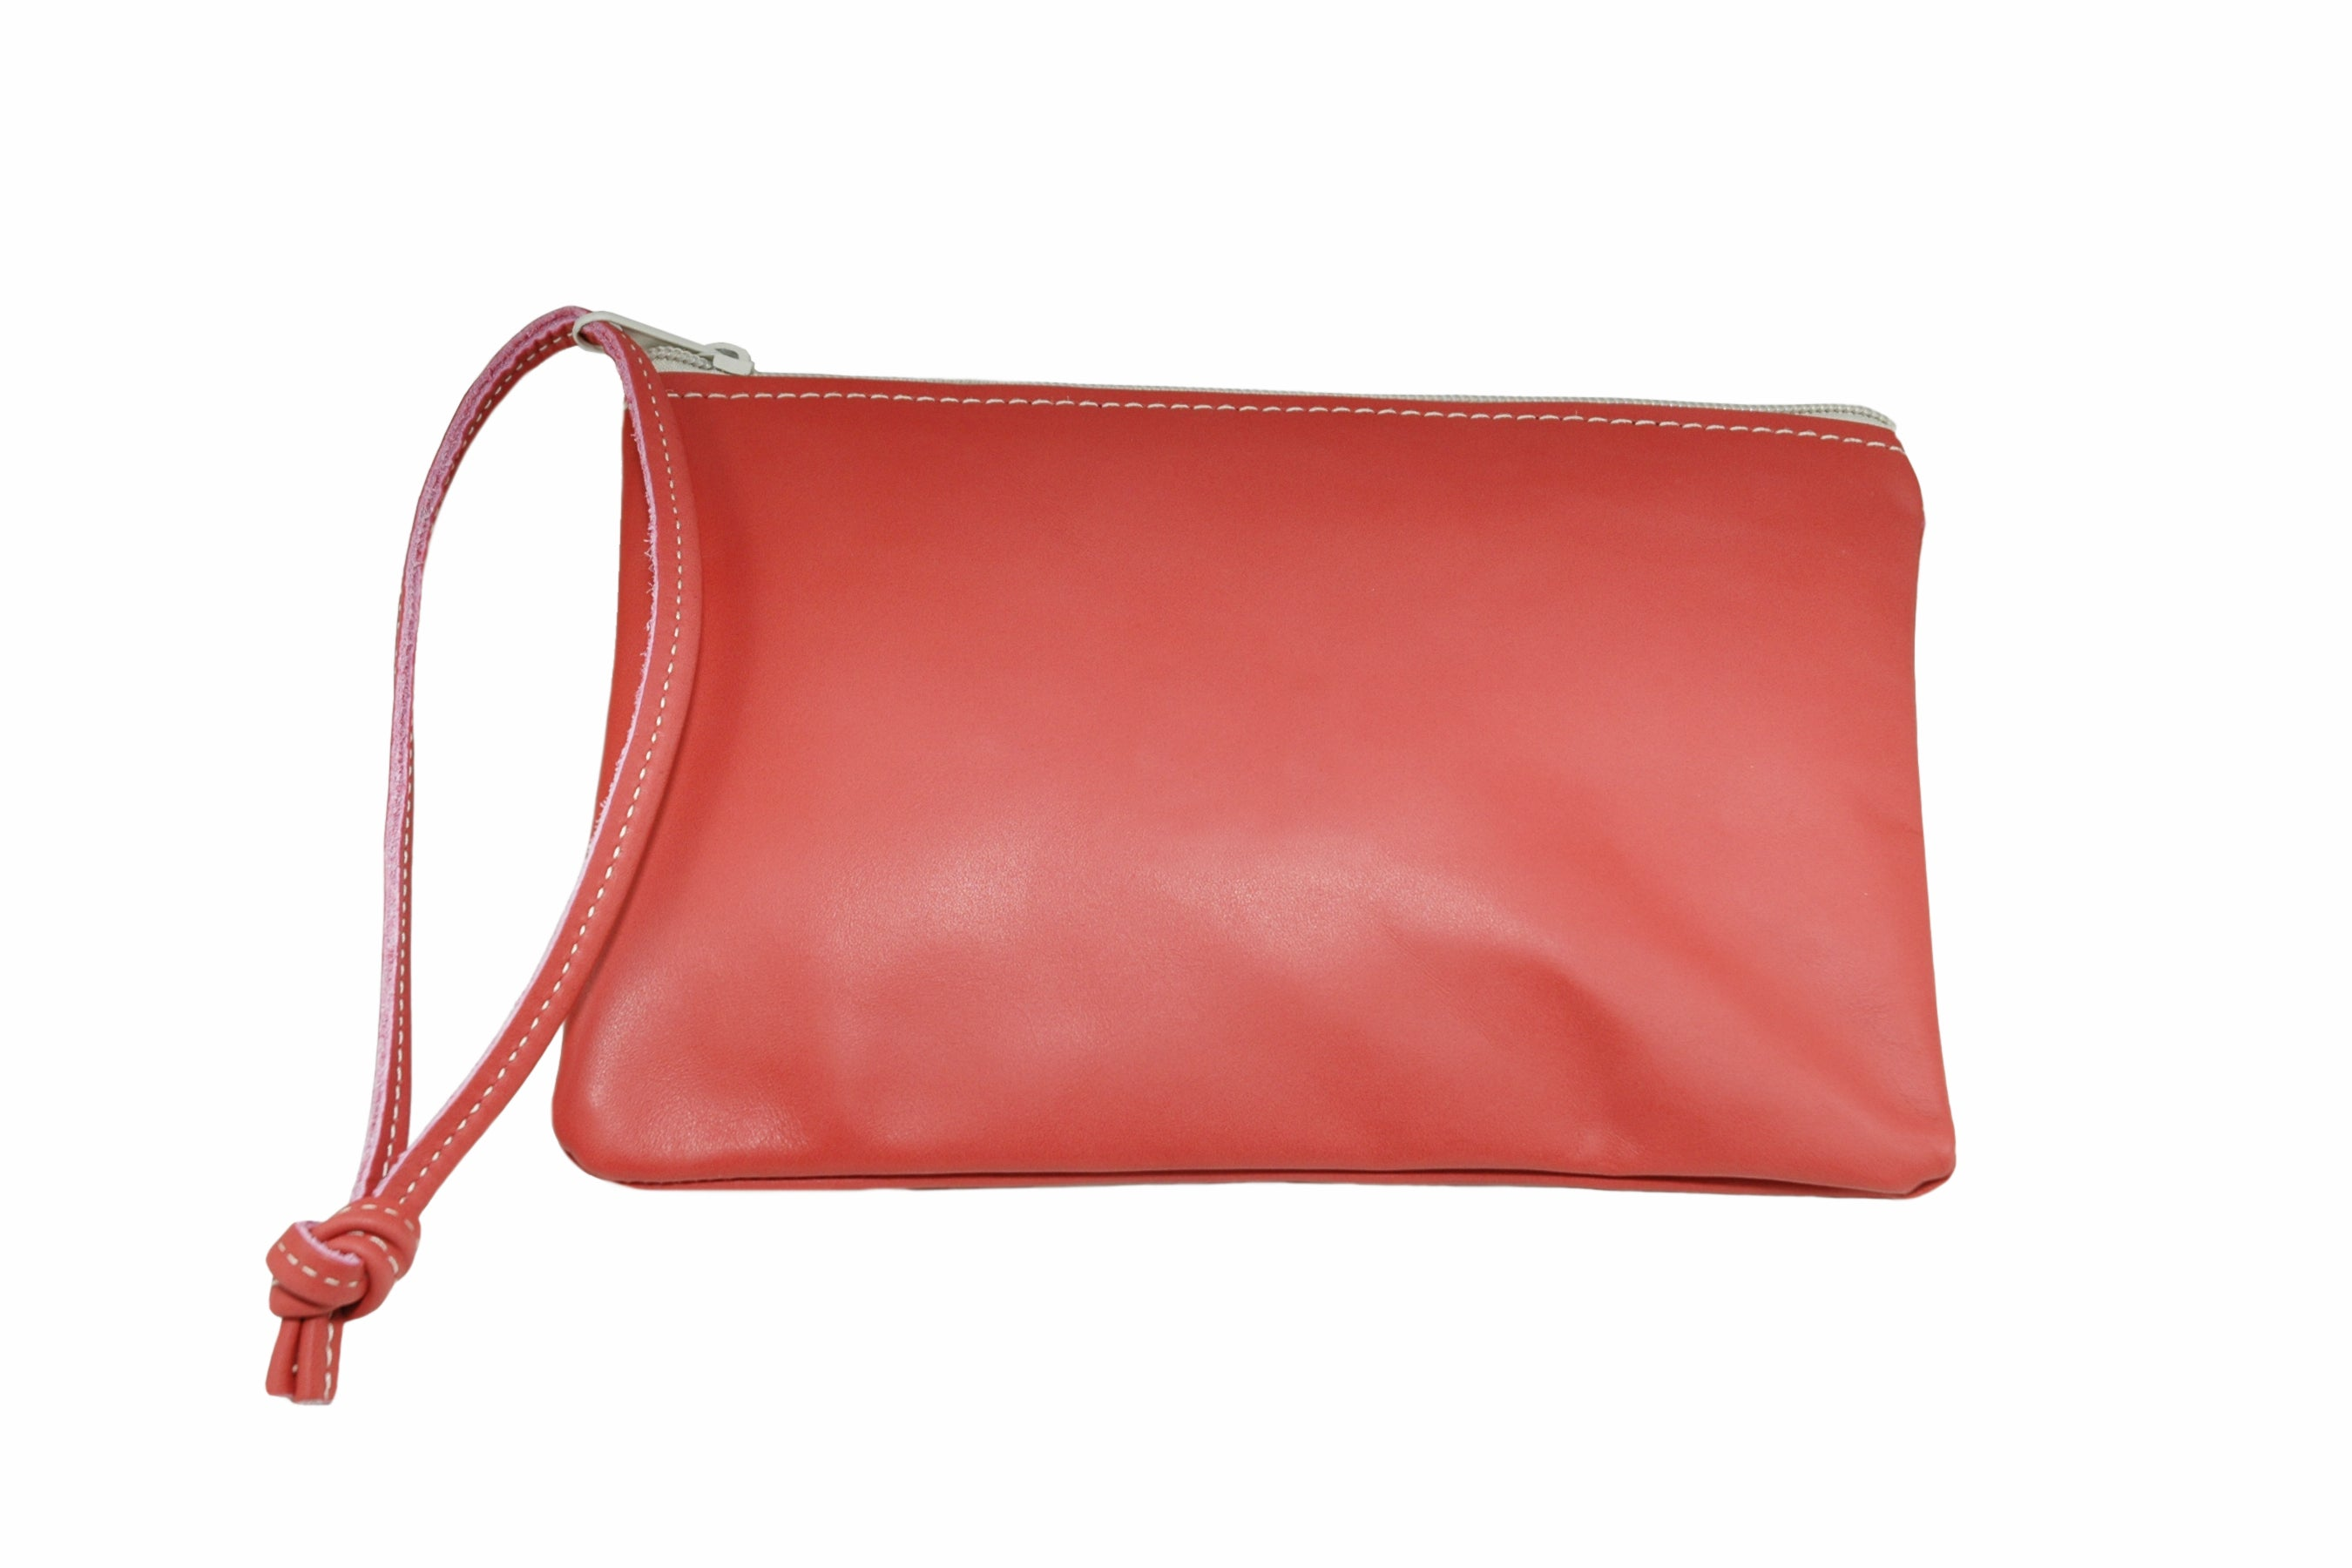 The Vineyard Wristlet